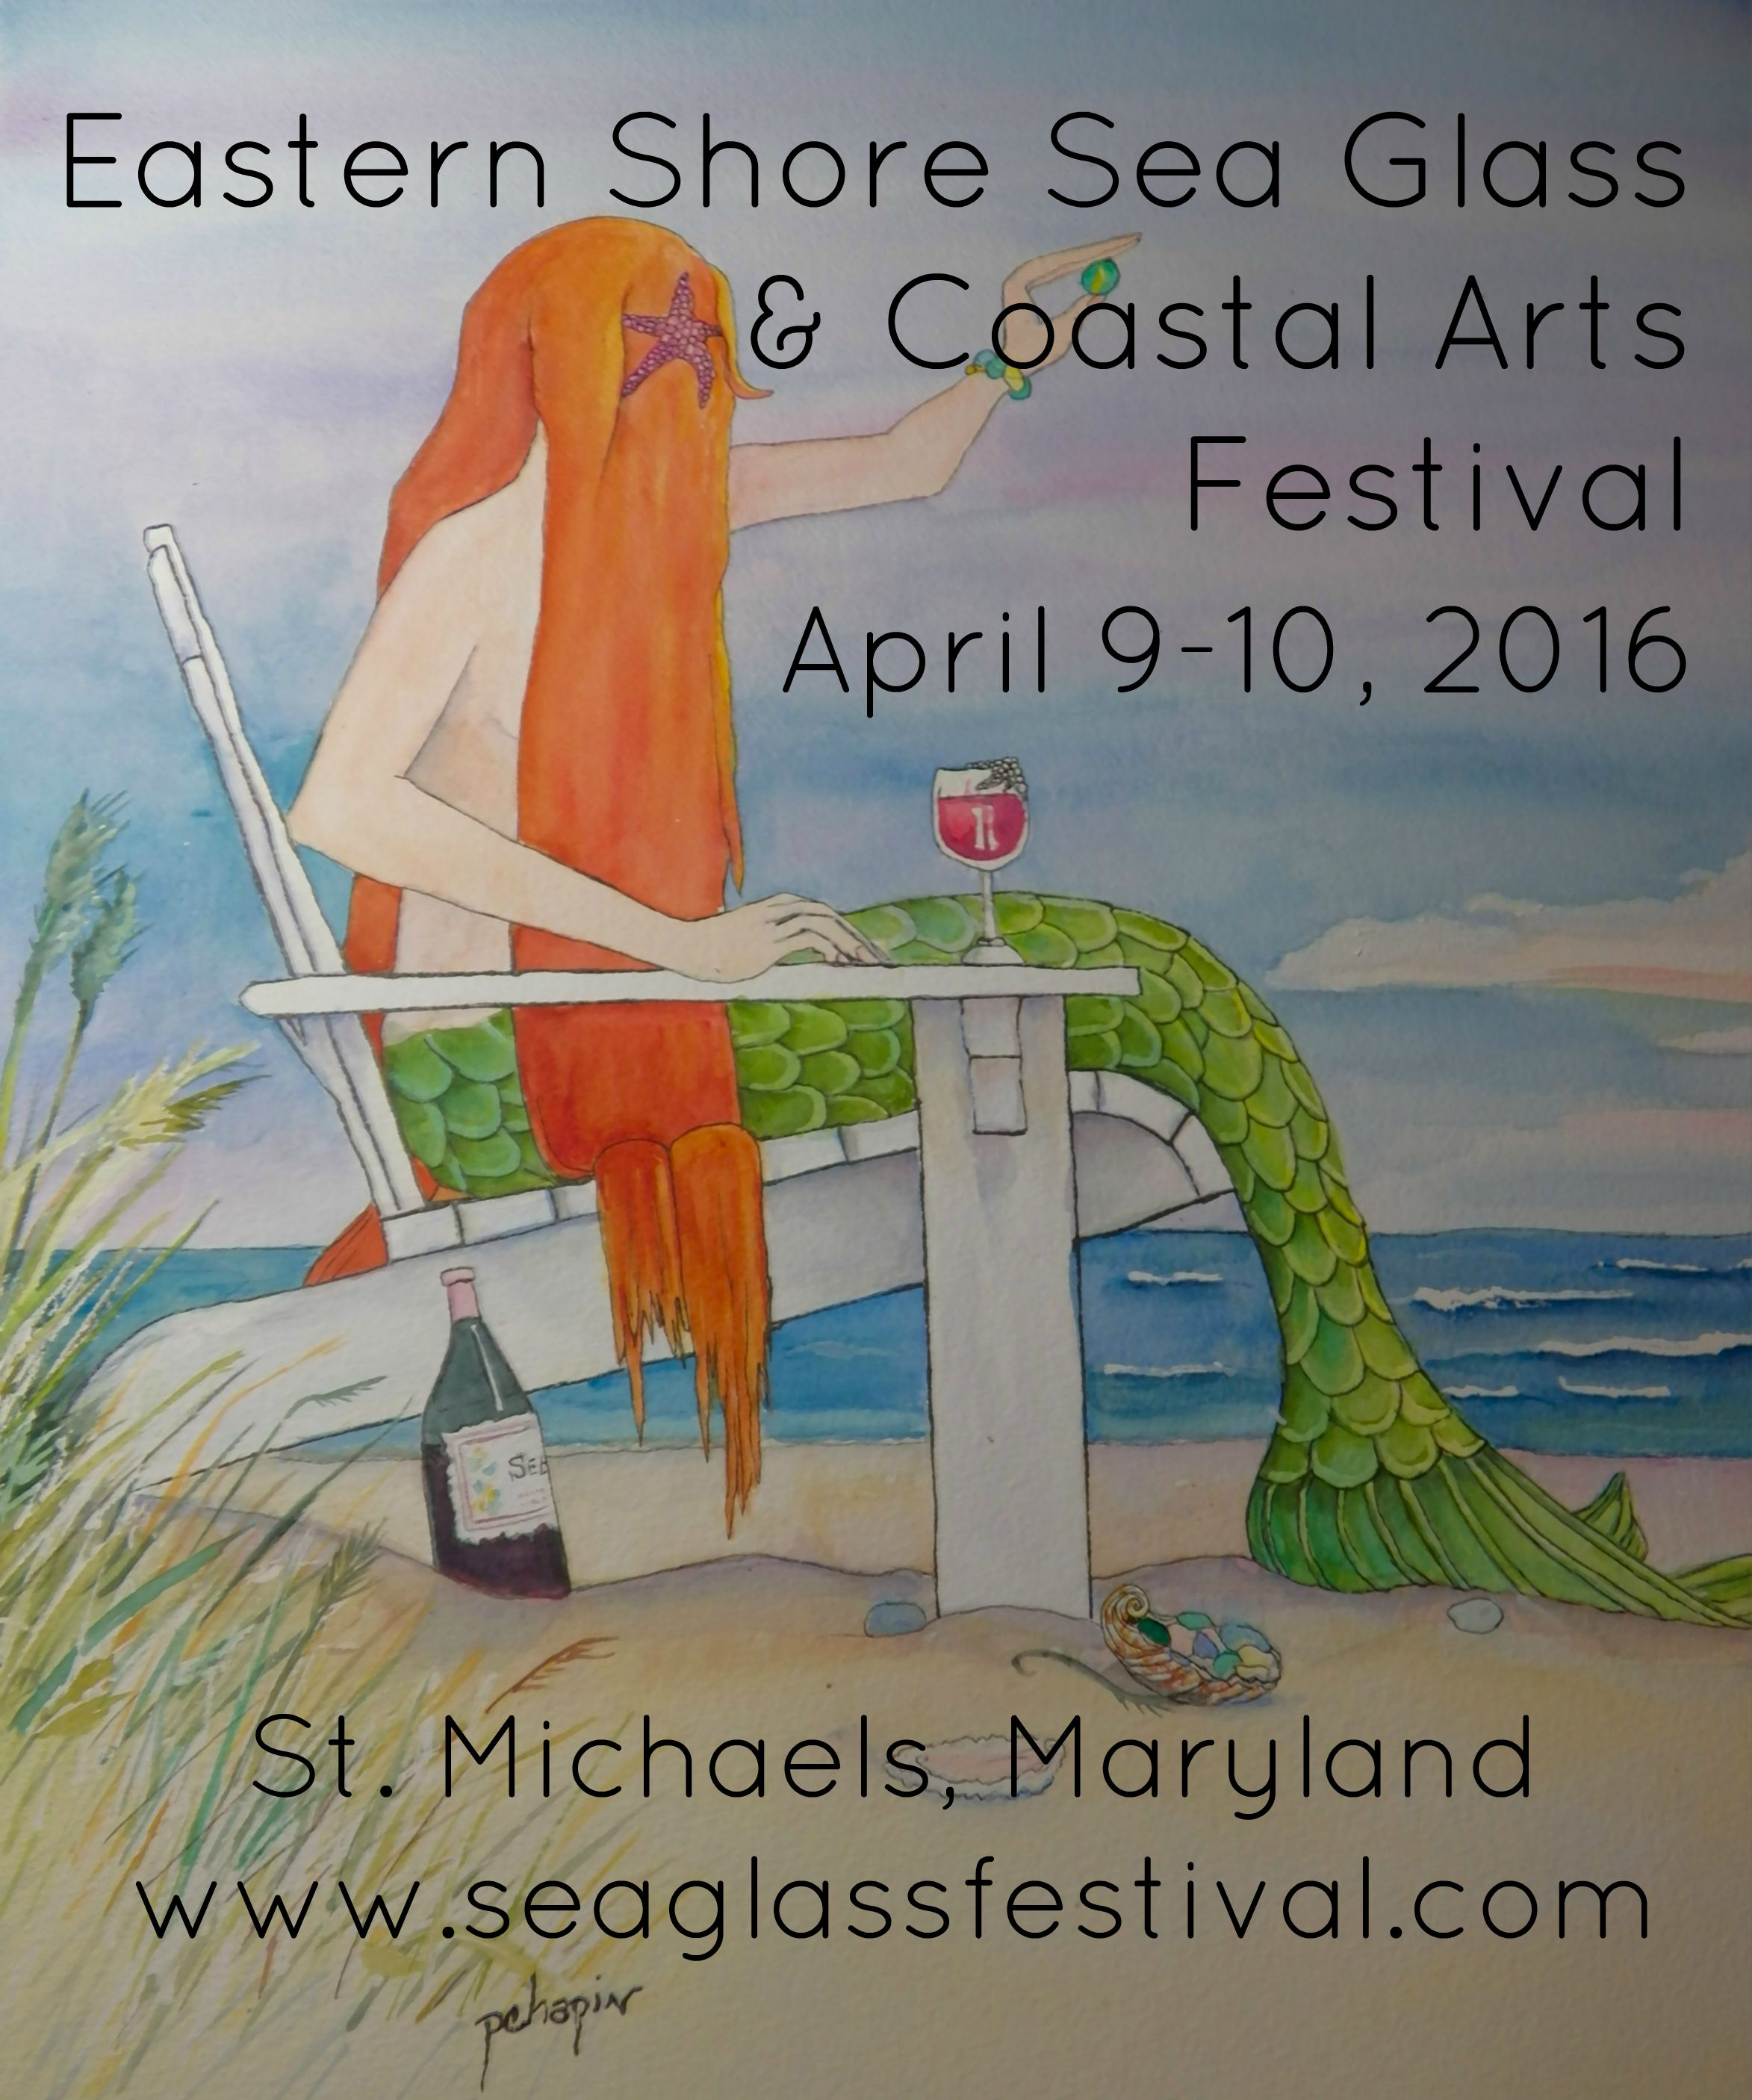 Eastern Shore Sea Glass and Coastal Arts Festival